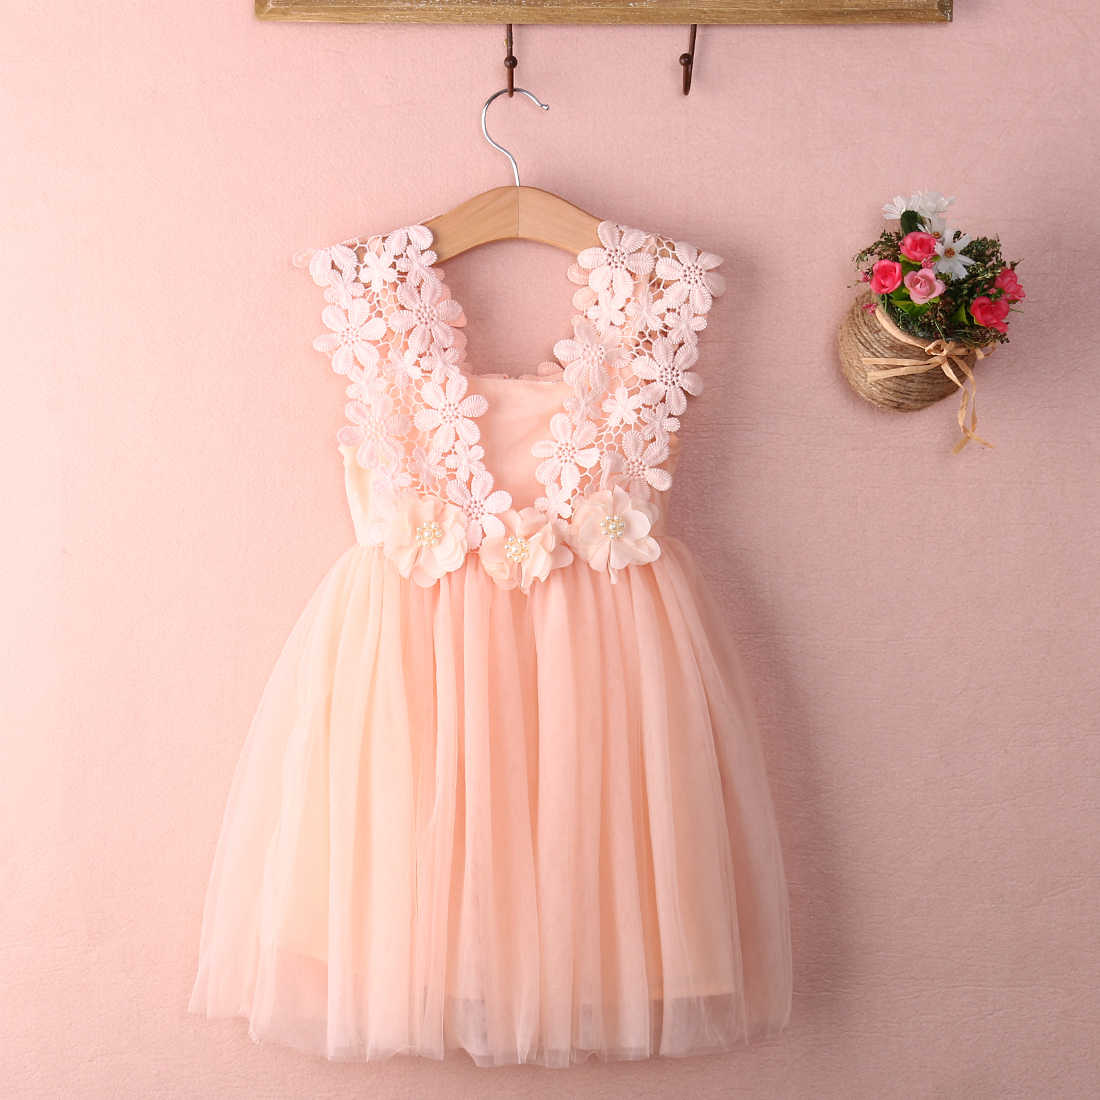 d6de5e06e ... Elegant Feast Baby Girls Solid Lovely Cute Sleeveless Princess Lace  Flower Tulle Tutu Gown Formal Party ...